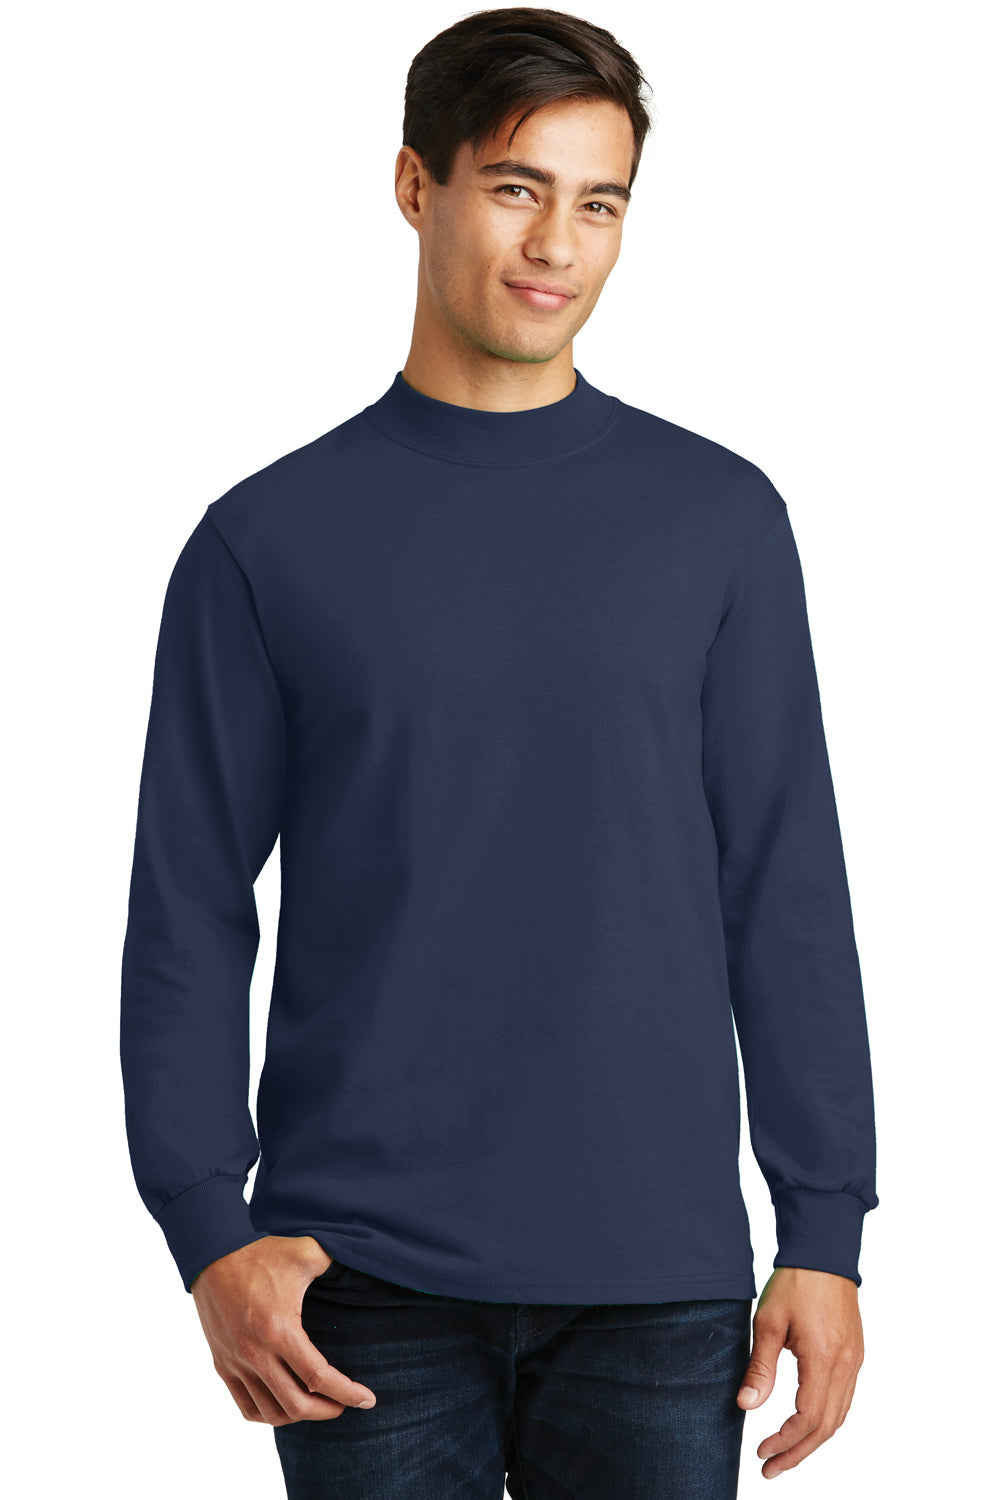 Port & Company PC61M Mens Essential Long Sleeve Mock Neck T-Shirt Navy Blue Front